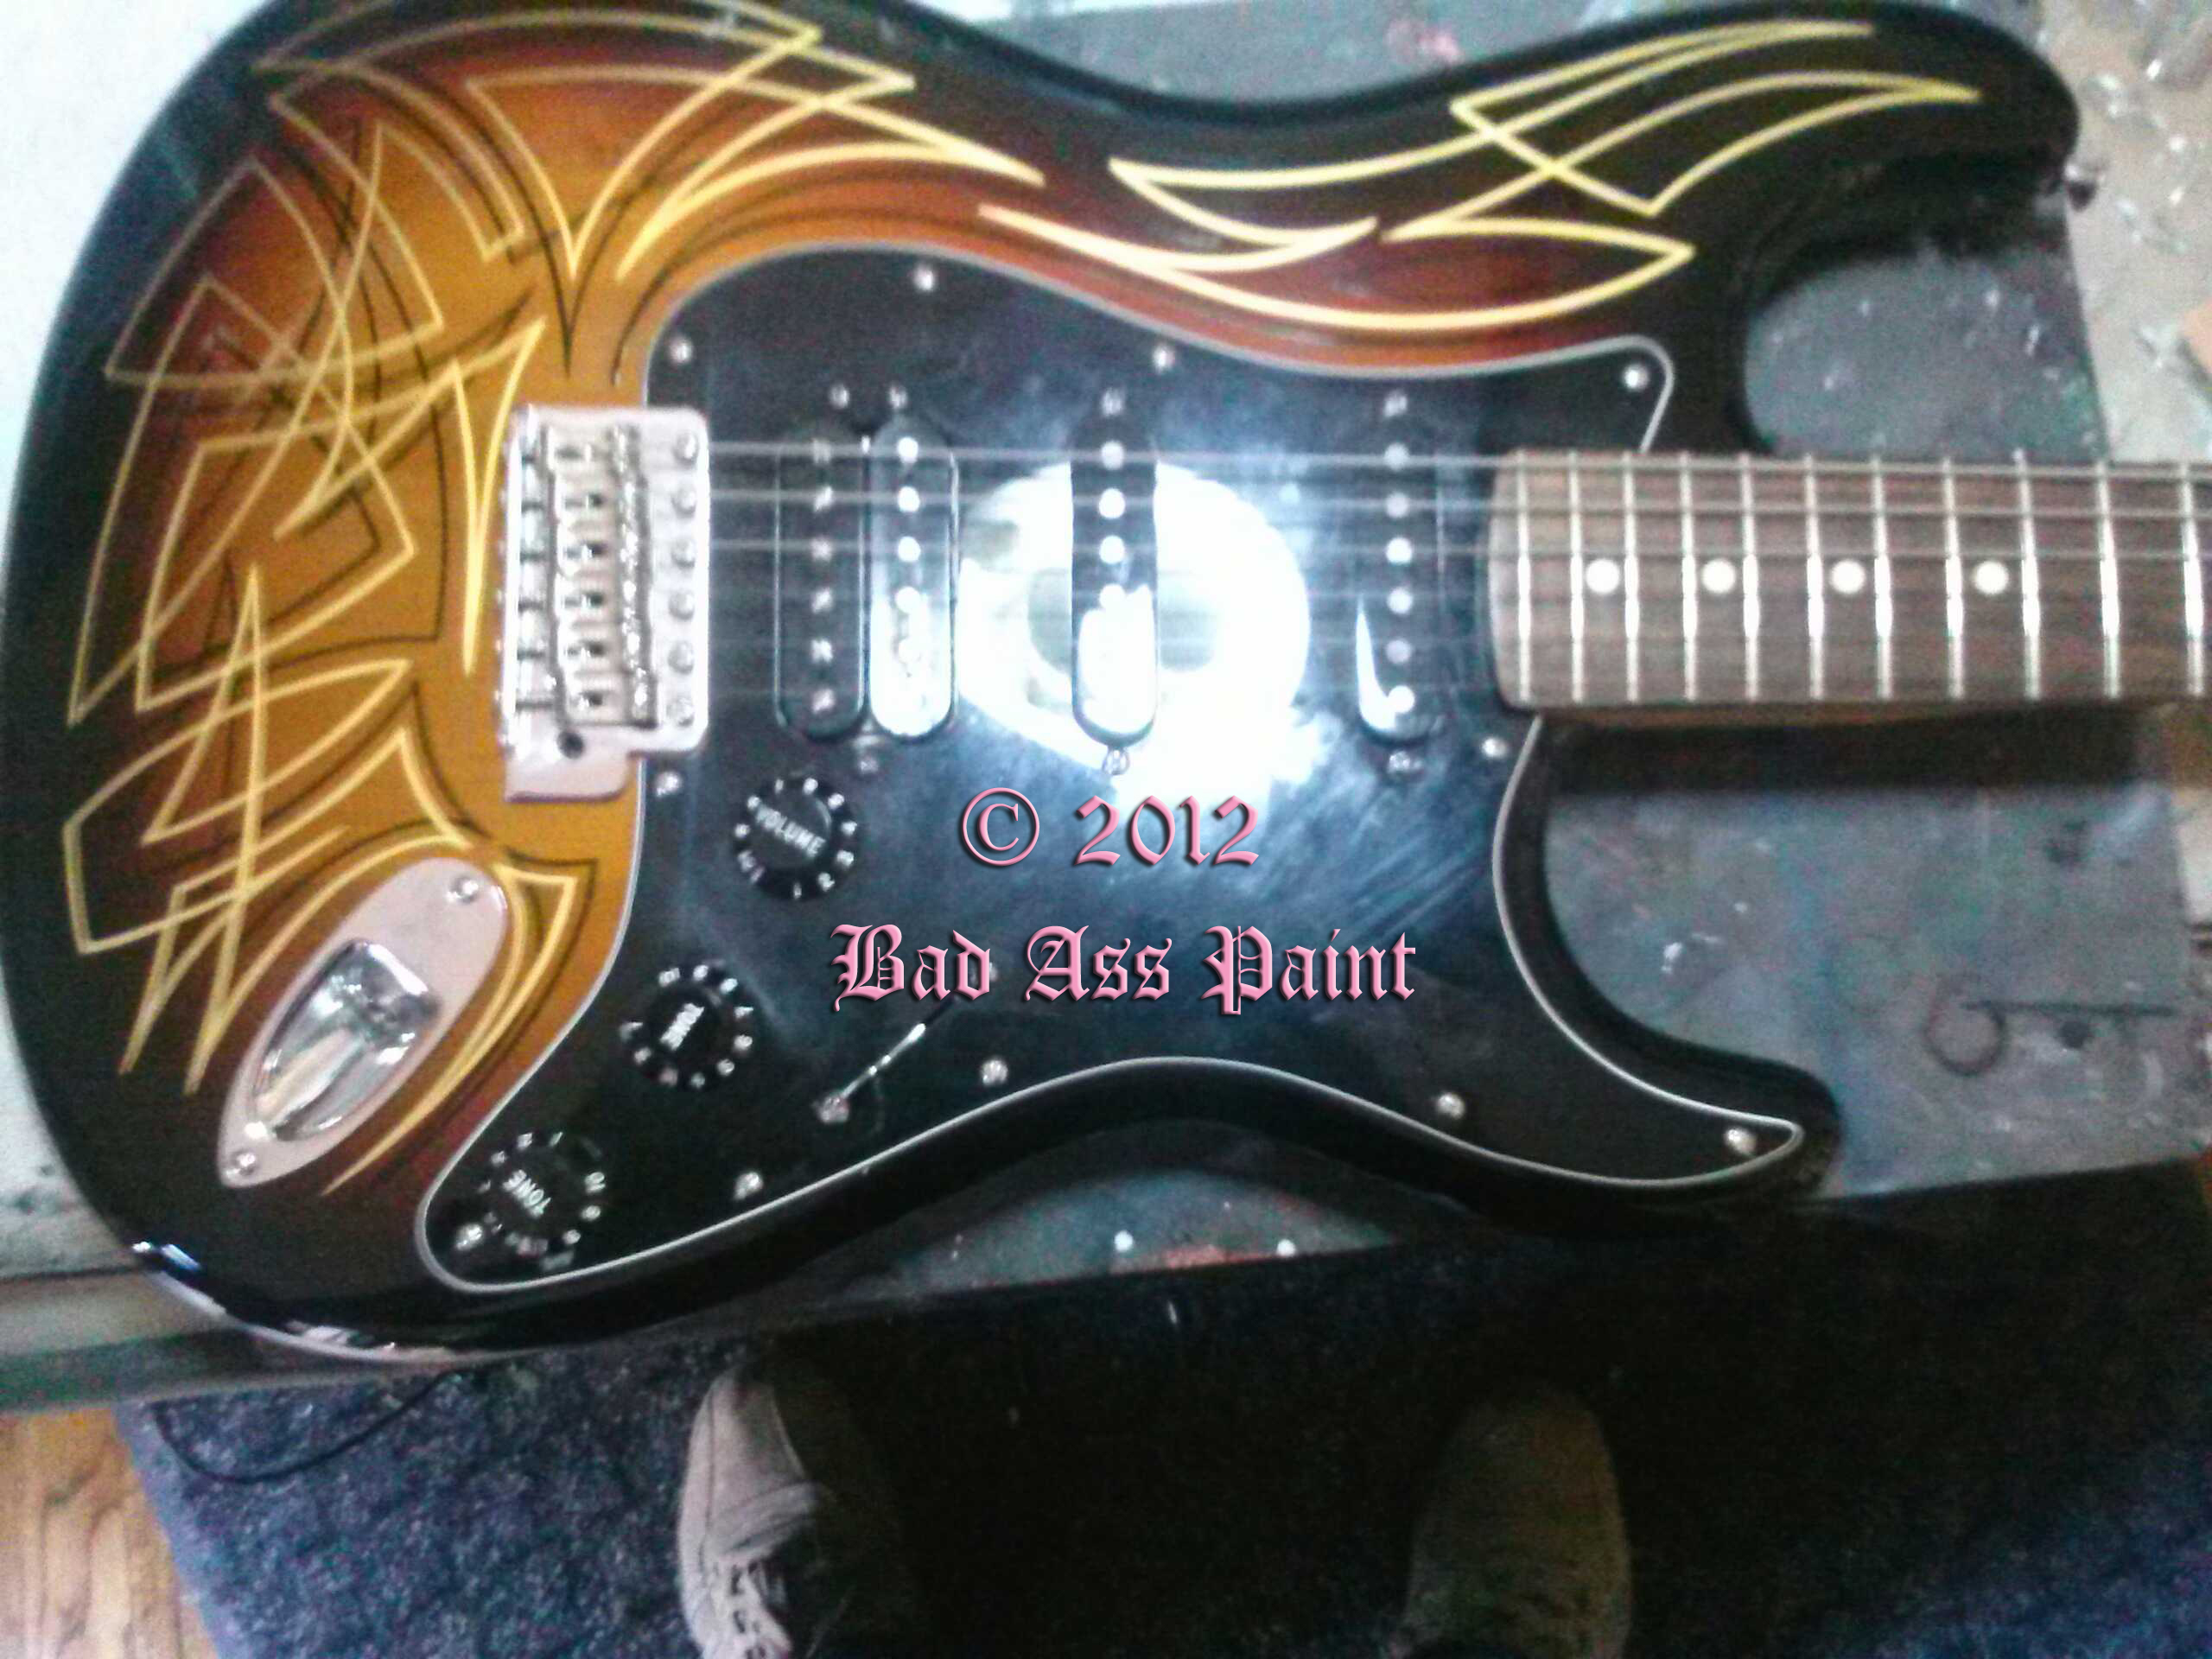 custom painted guitars by bad ass paint rock and roll custom paint jobs. Black Bedroom Furniture Sets. Home Design Ideas